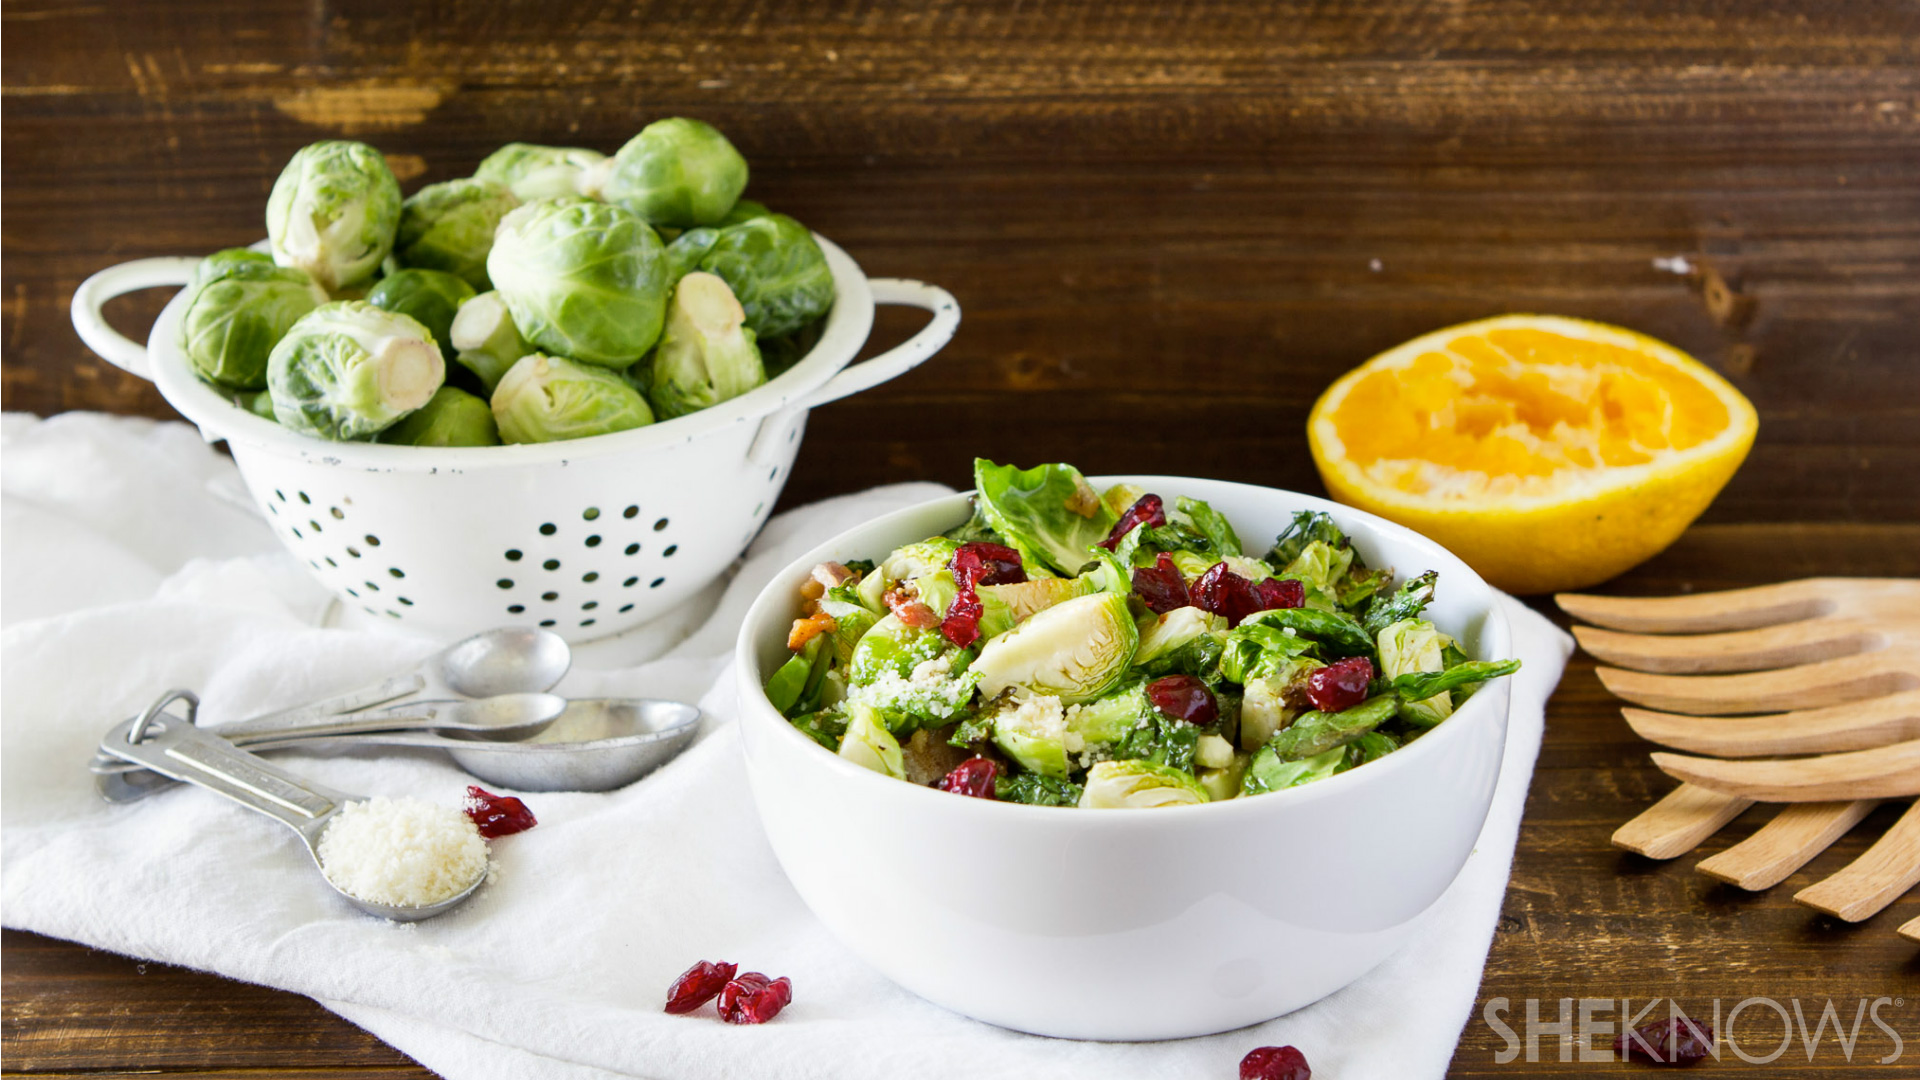 Grilled brussels sprouts salad